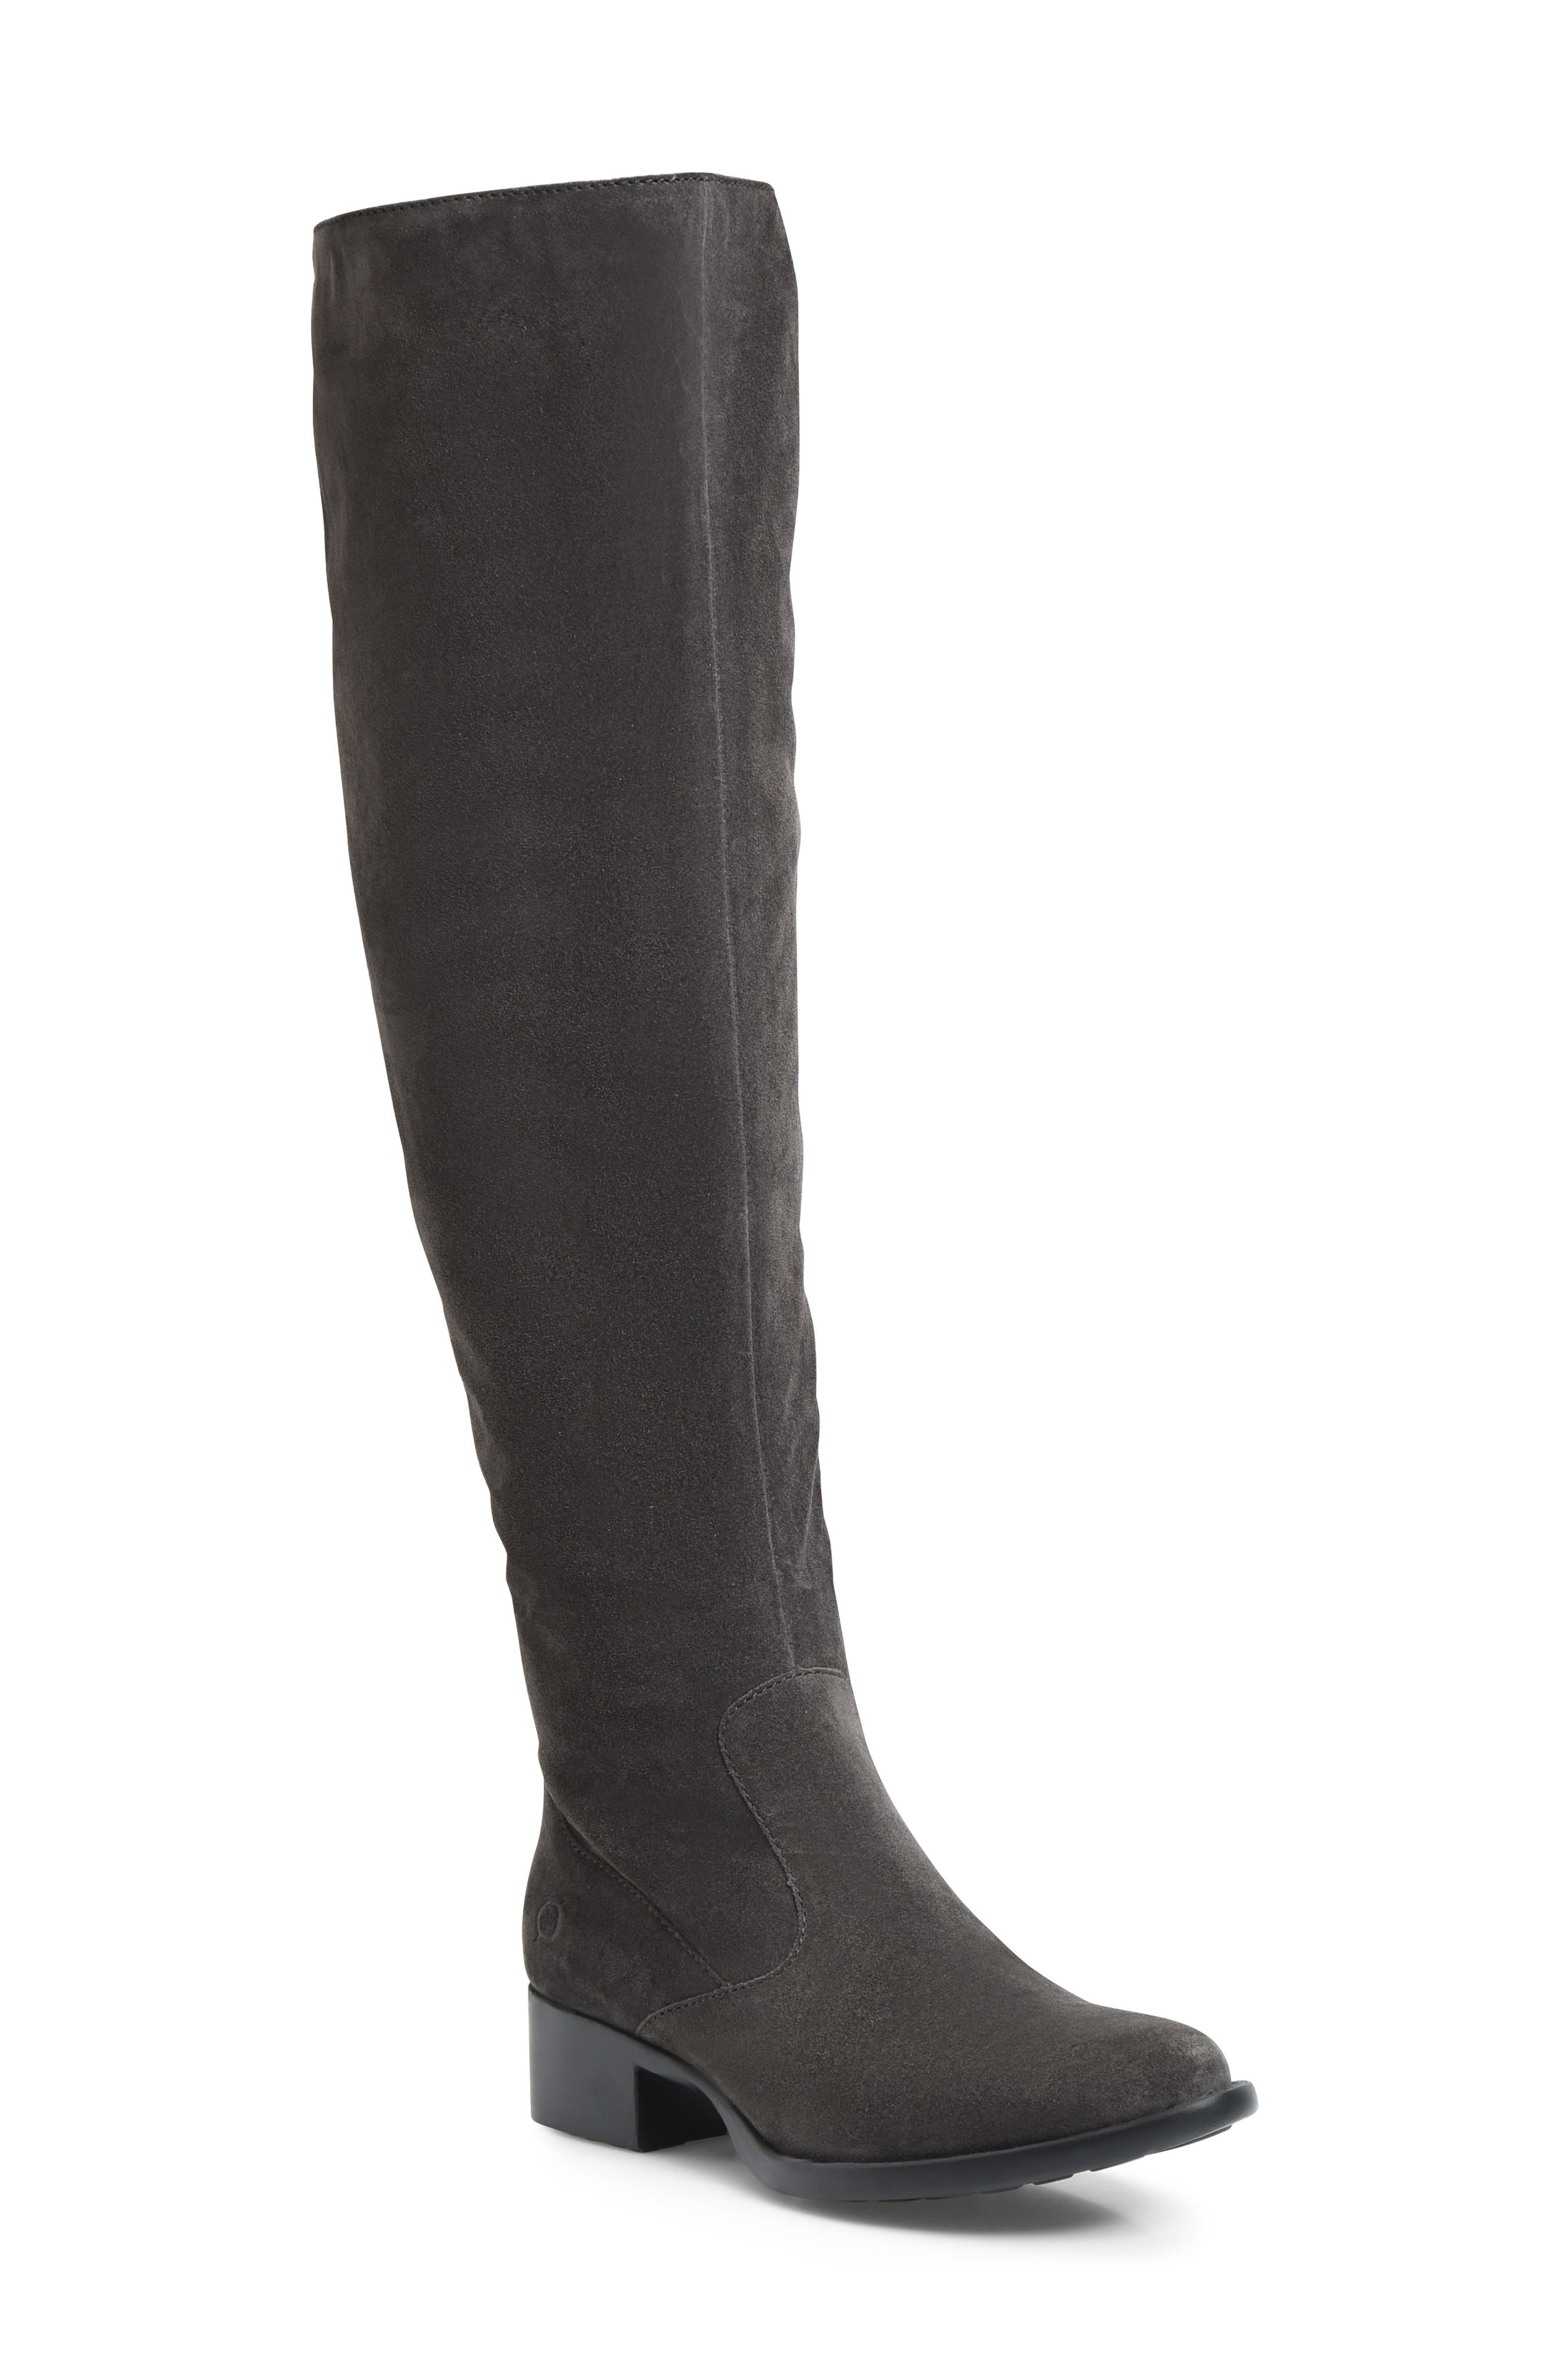 B?rn Cricket Over The Knee Boot- Grey